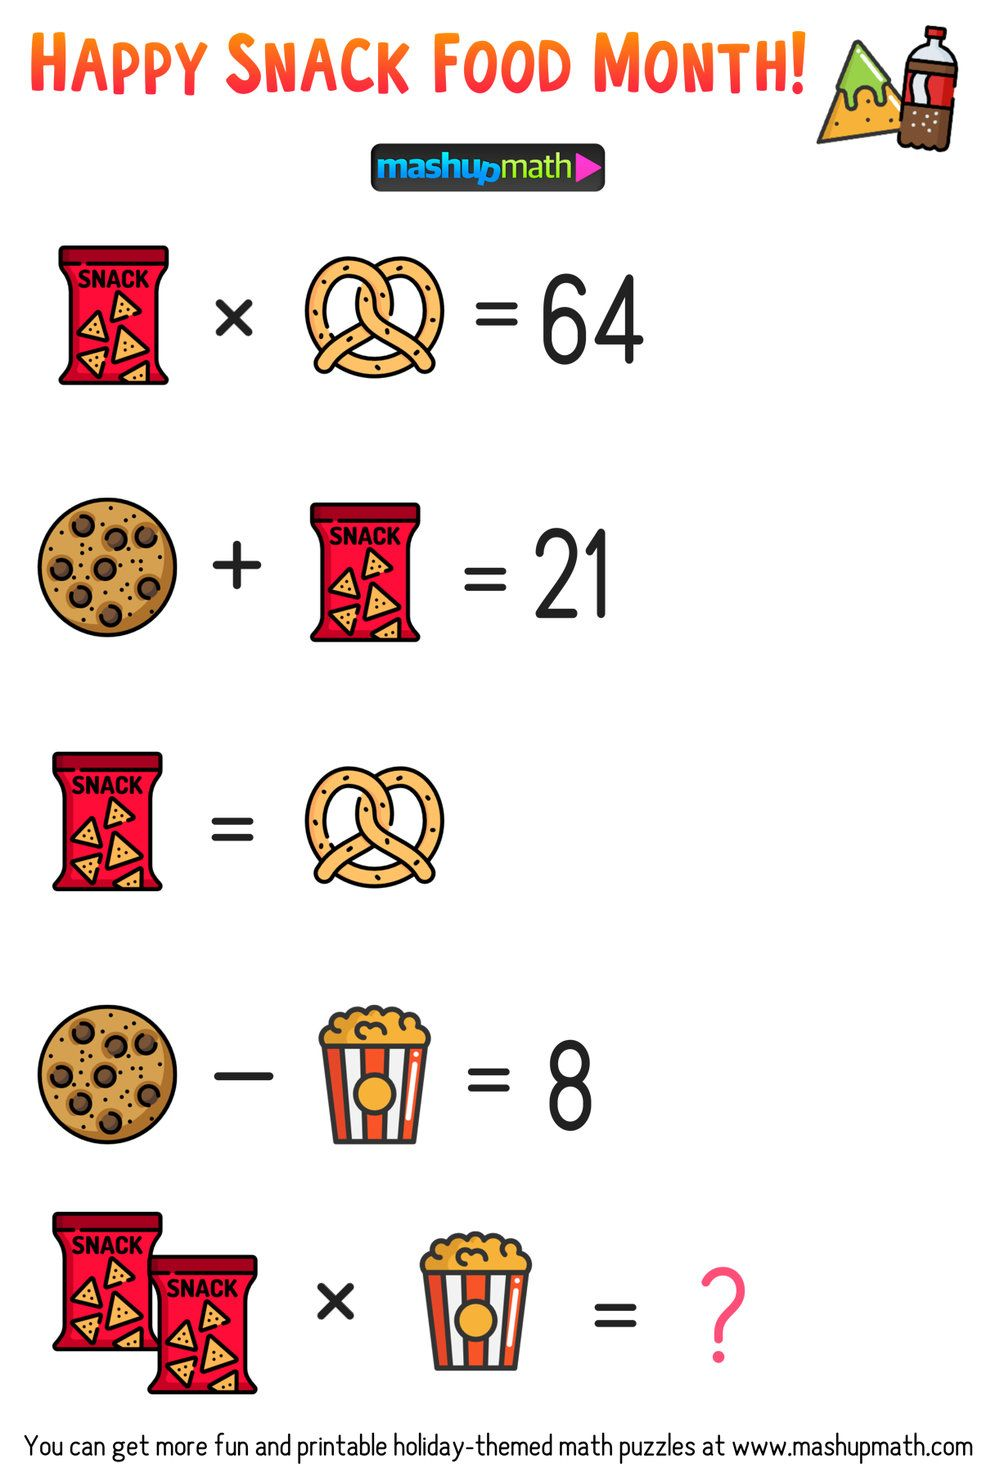 Free Math Brain Teaser Puzzles For Kids In Grades 1 6 To Celebrate Snack Food Month Maths Puzzles Free Math Brain Teasers For Kids